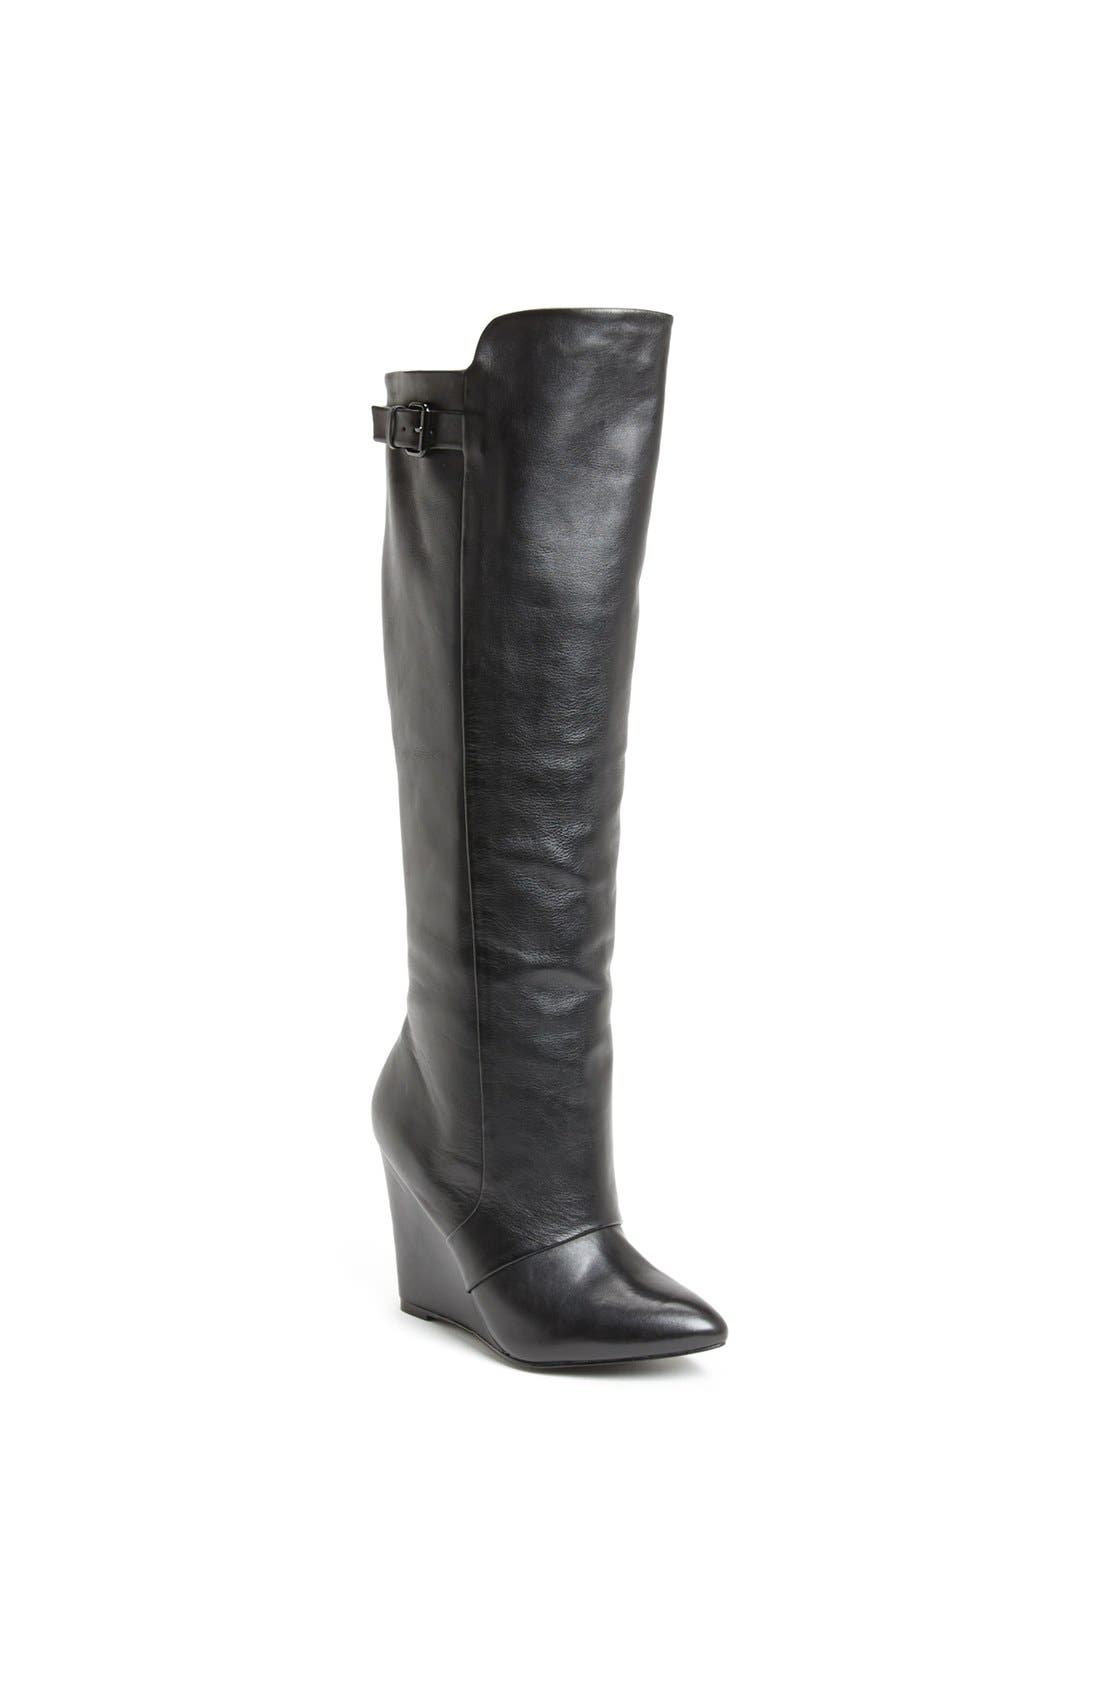 Main Image - Steve Madden 'Zylon' Leather Boot